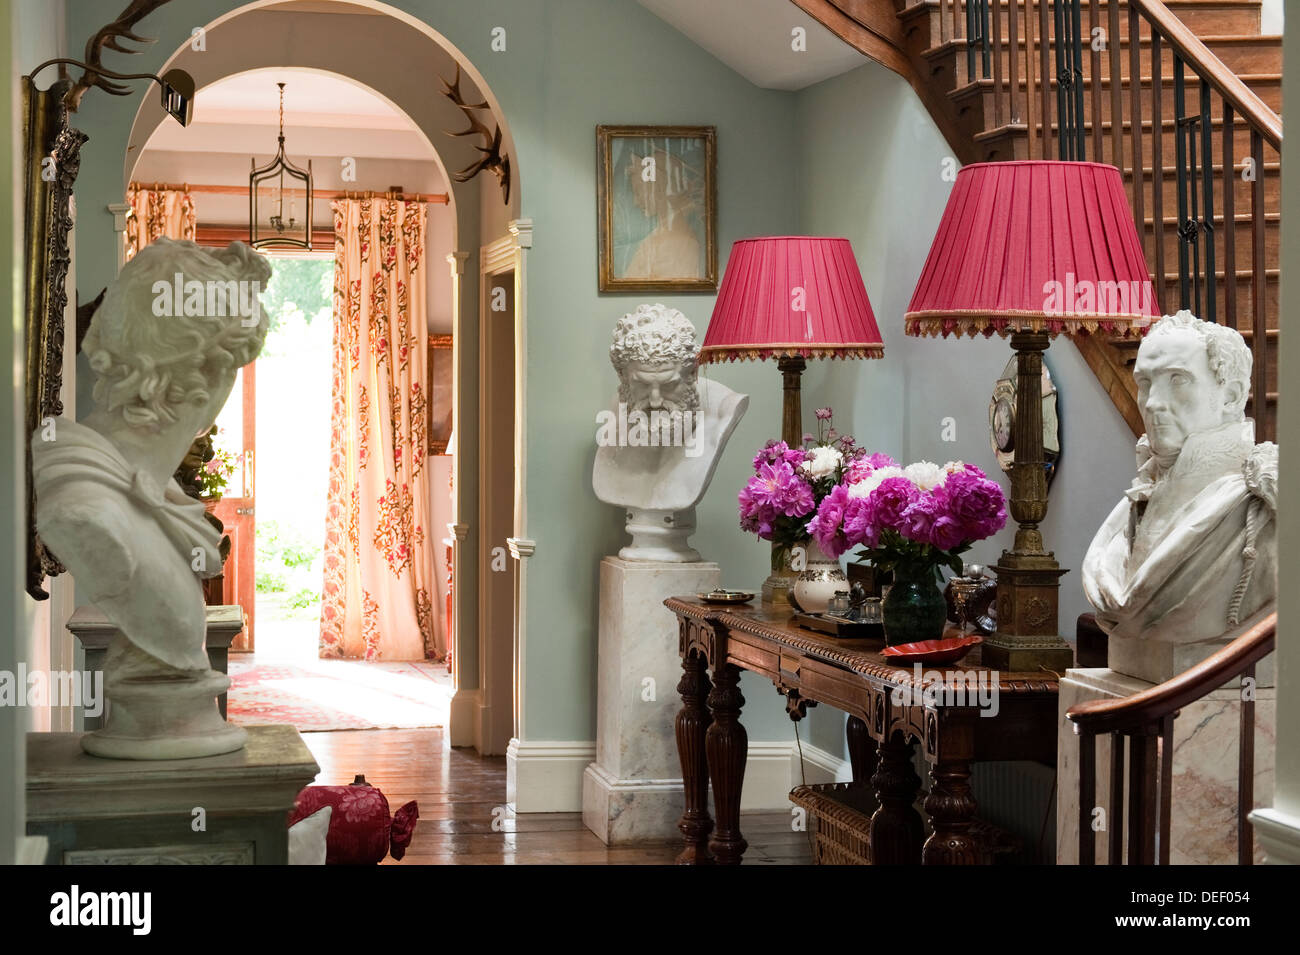 Country Estate entrance hallway with busts of human heads - Stock Image